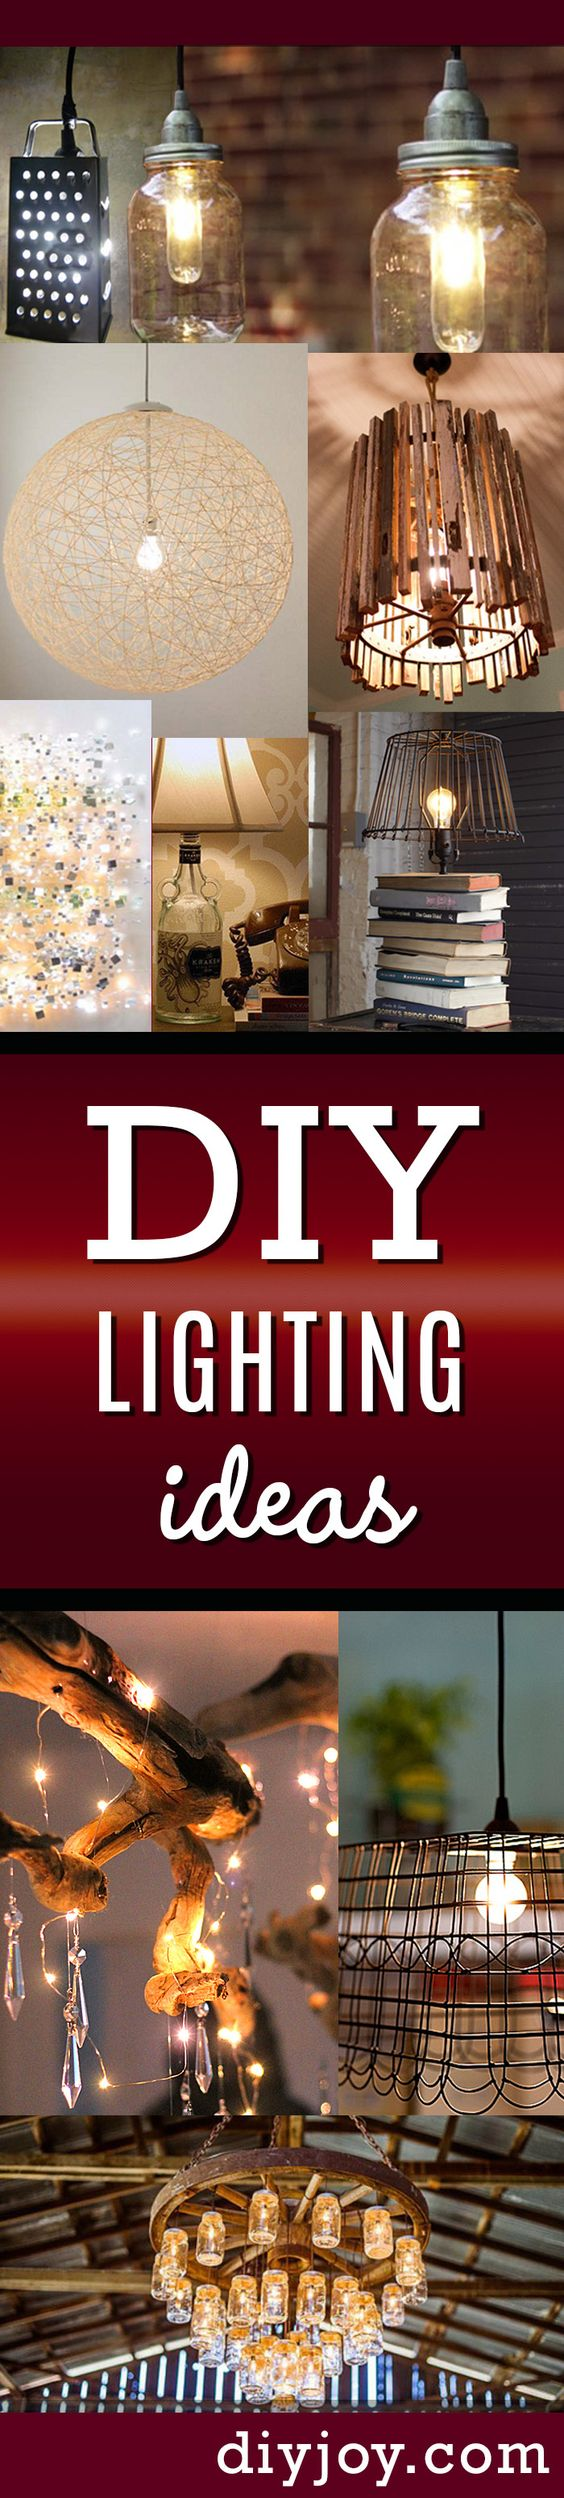 DIY Lighting Ideas and Cool DIY Light Projects for the Home. Chandeliers, lamps, awesome pendants and creative hanging fixtures,  complete with tutorials with instructions  |  http://diyjoy.com/diy-projects-lighting-ideas